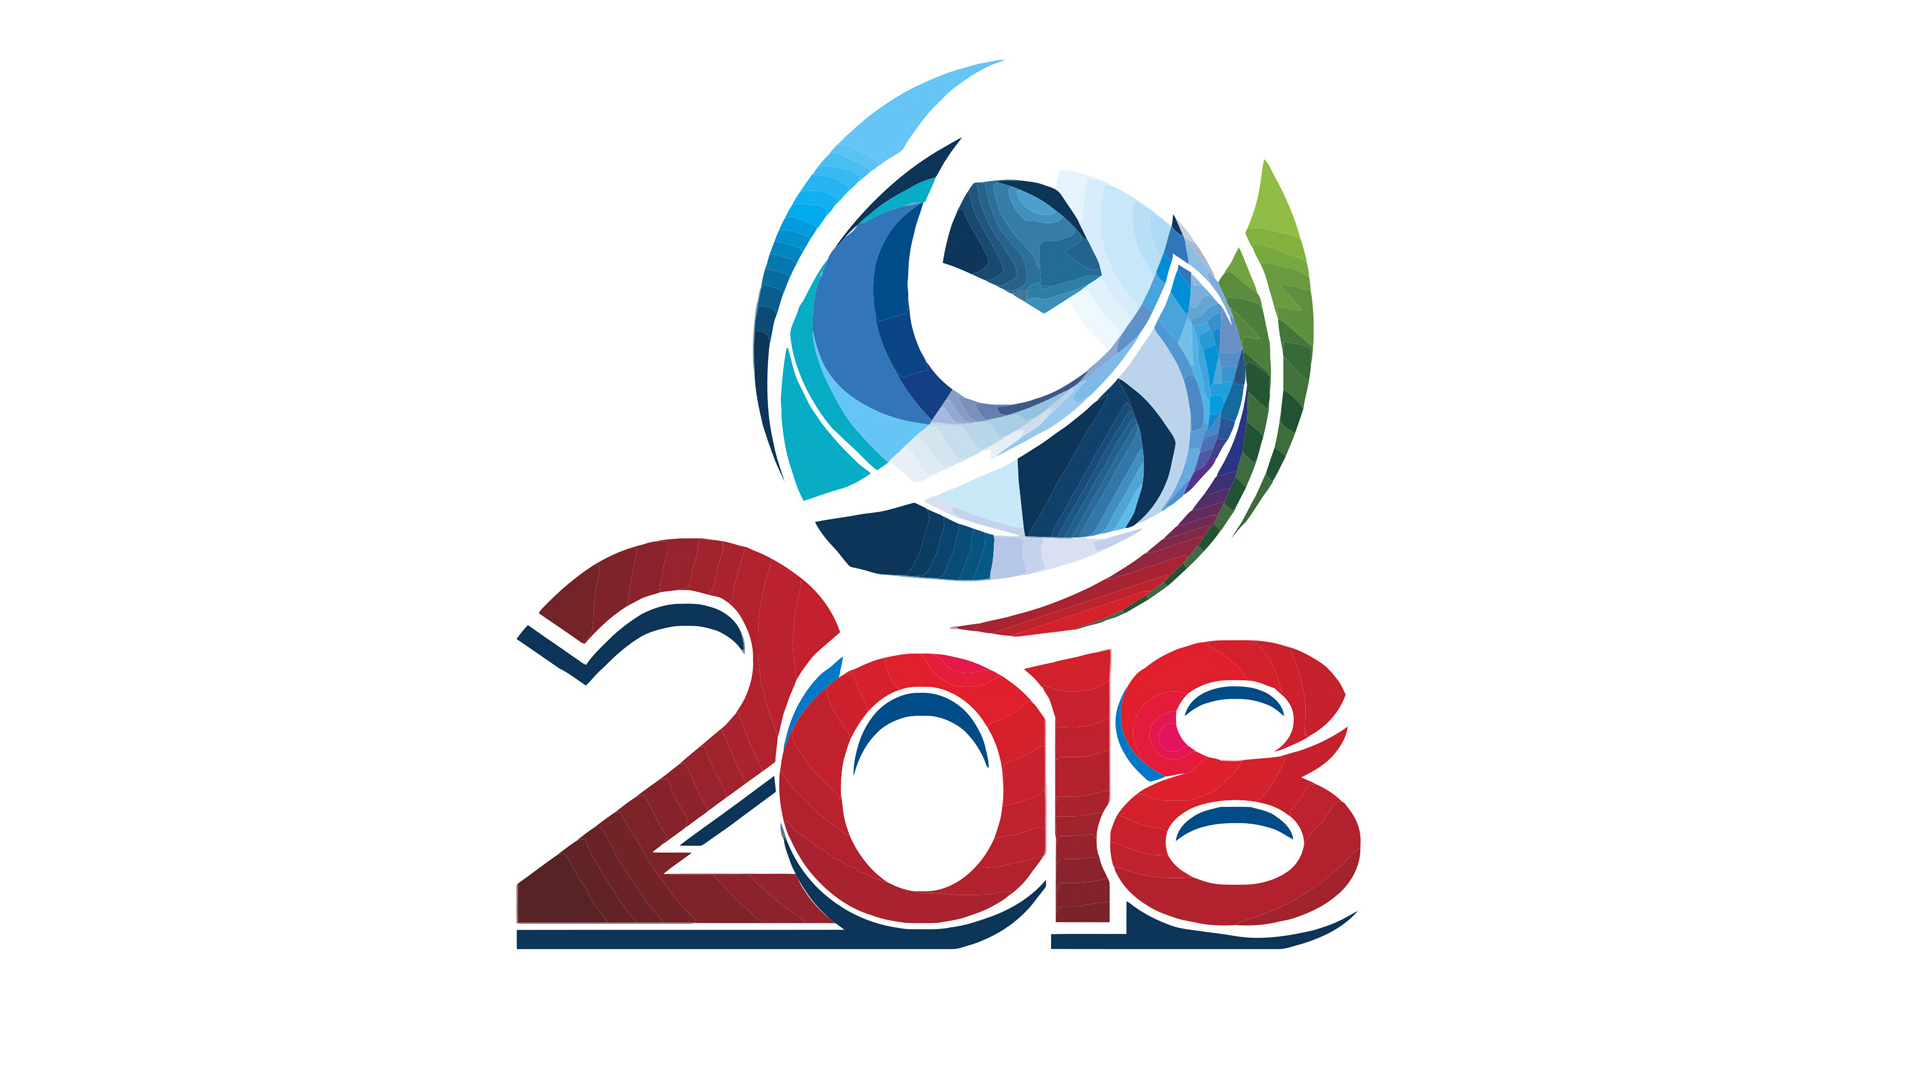 2018 fifa world cup hd wallpaper background image 1920x1080 id